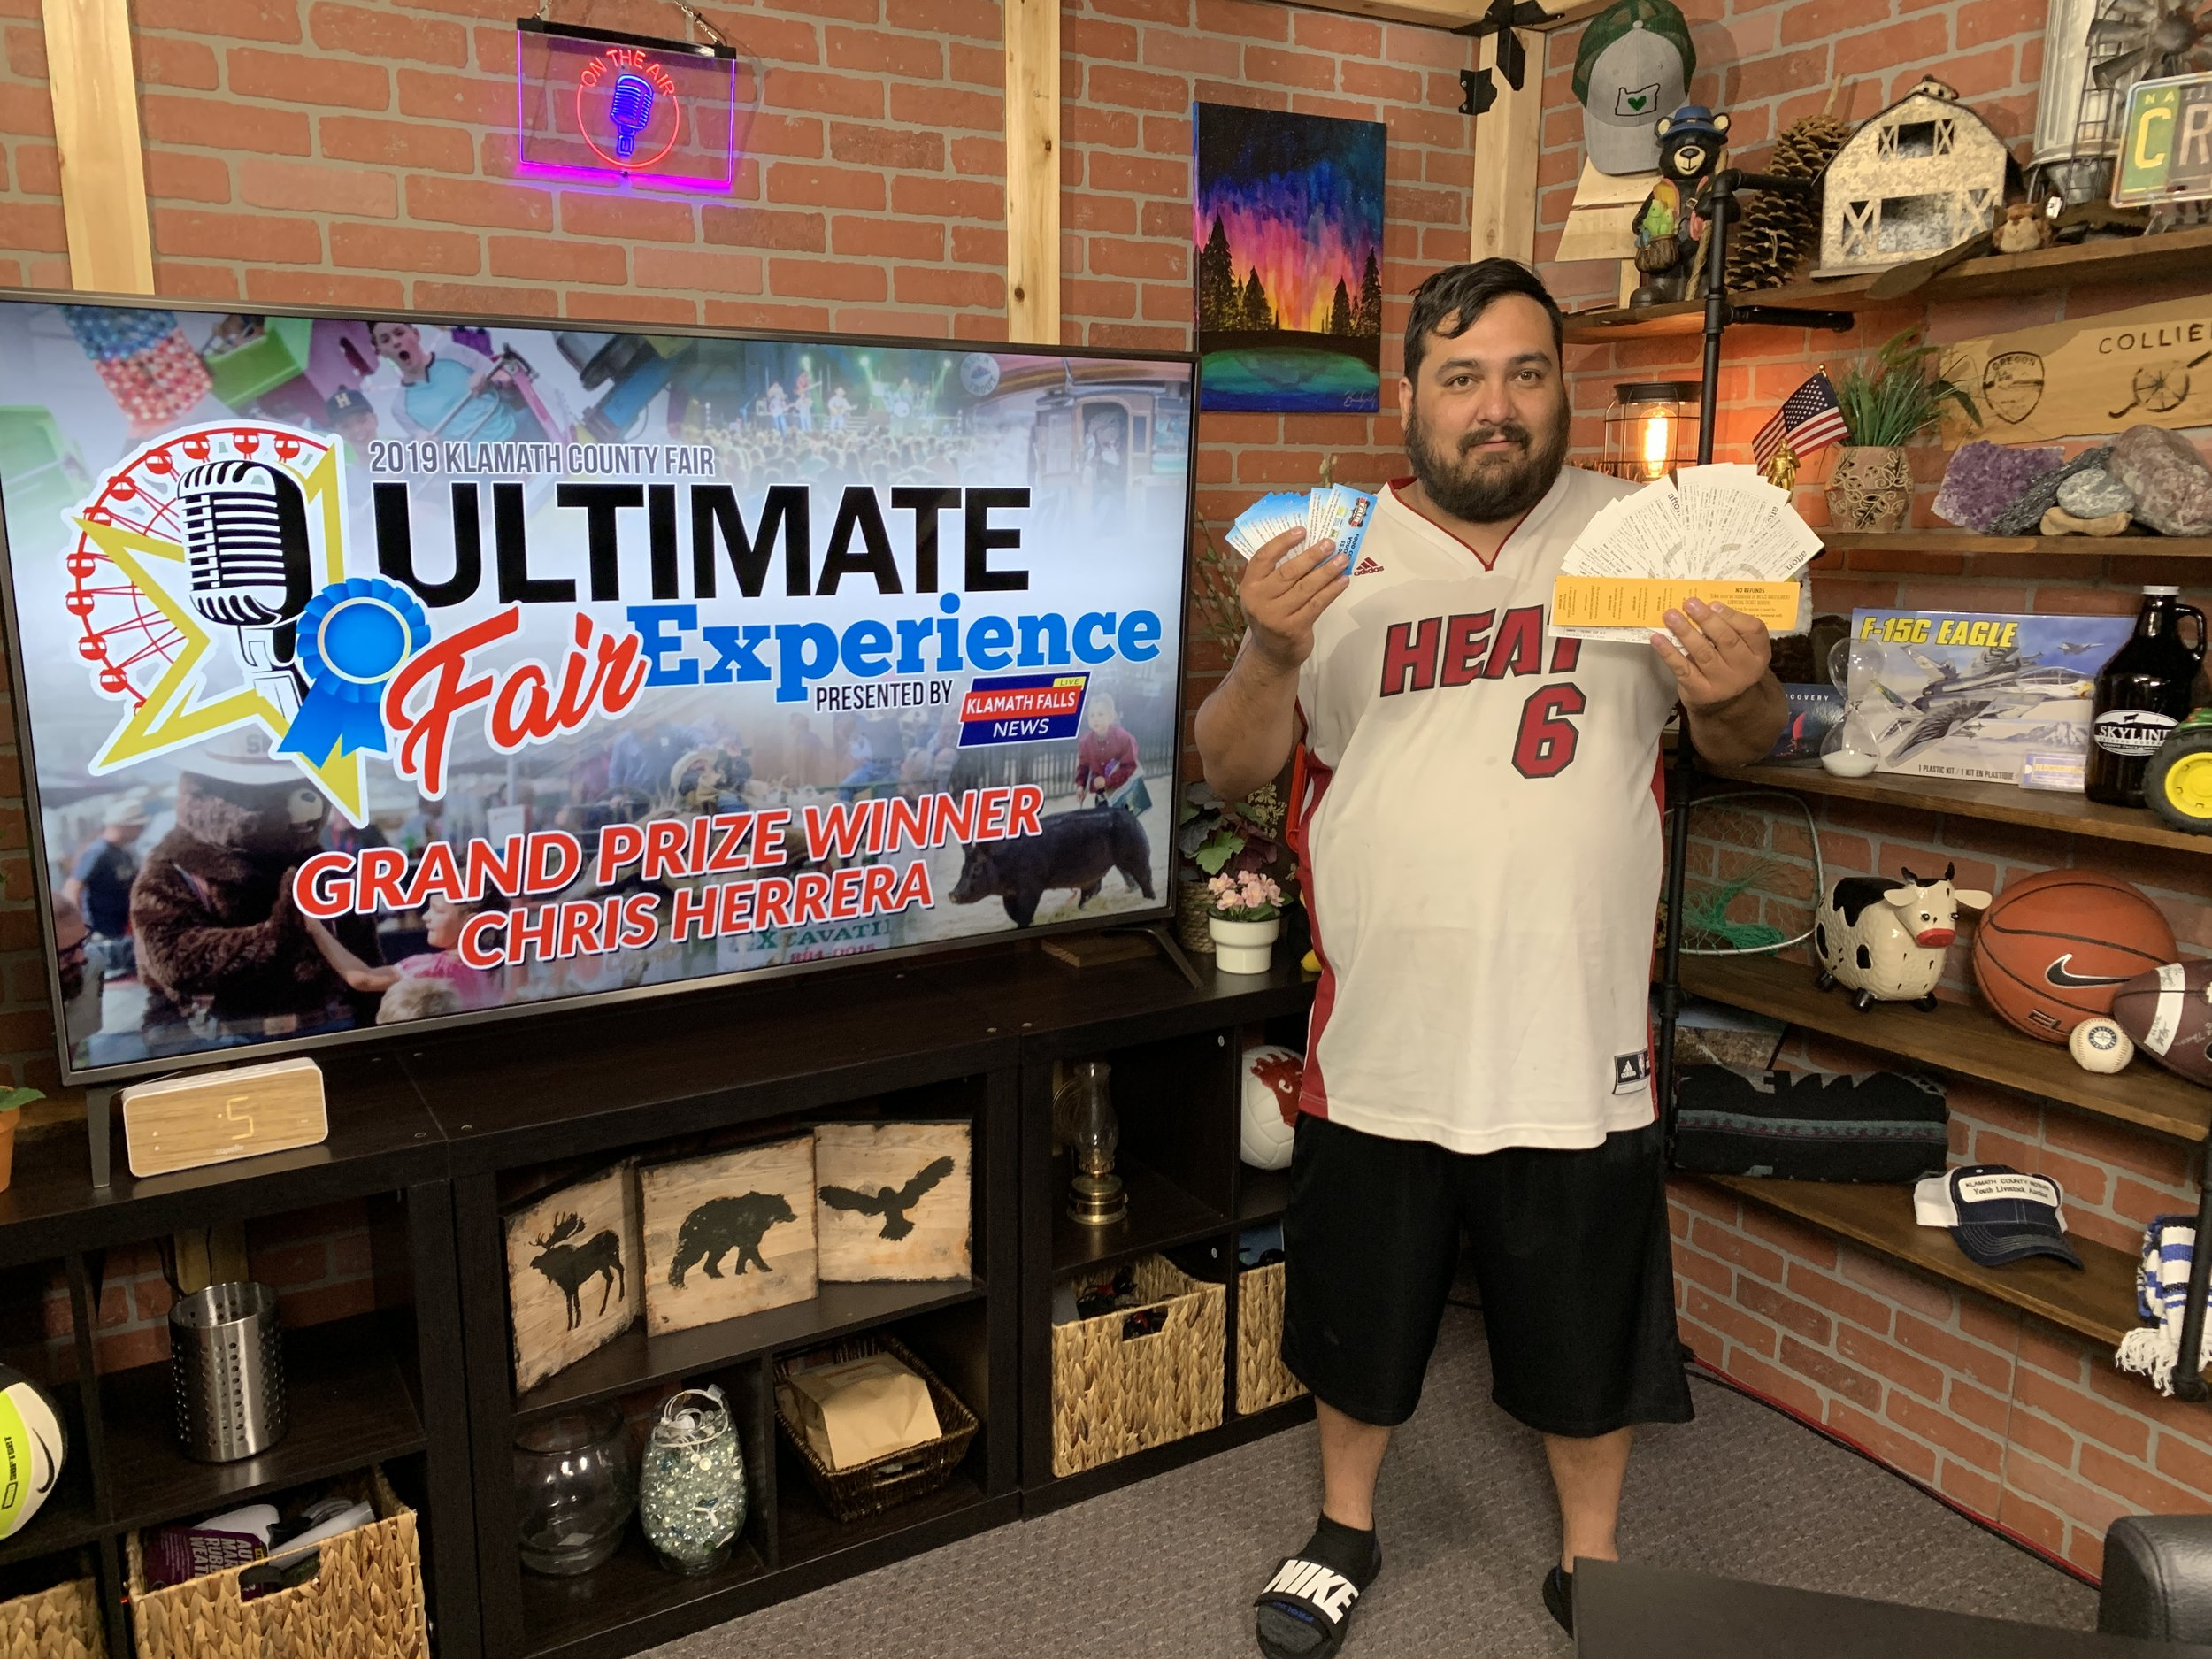 Grand Prize: Chris Herrera - • 2 Party Zone tickets to Midland• 2 Party Zone tickets to Jon Wolfe• 2 Party Zone tickets to Lonestar• 2 Friday night Rodeo tickets• 2 Saturday night Rodeo tickets• 4 Golden Carnival wristband coupons• 4 2019 Klamath County Fair Season Passes• $100 in fair food